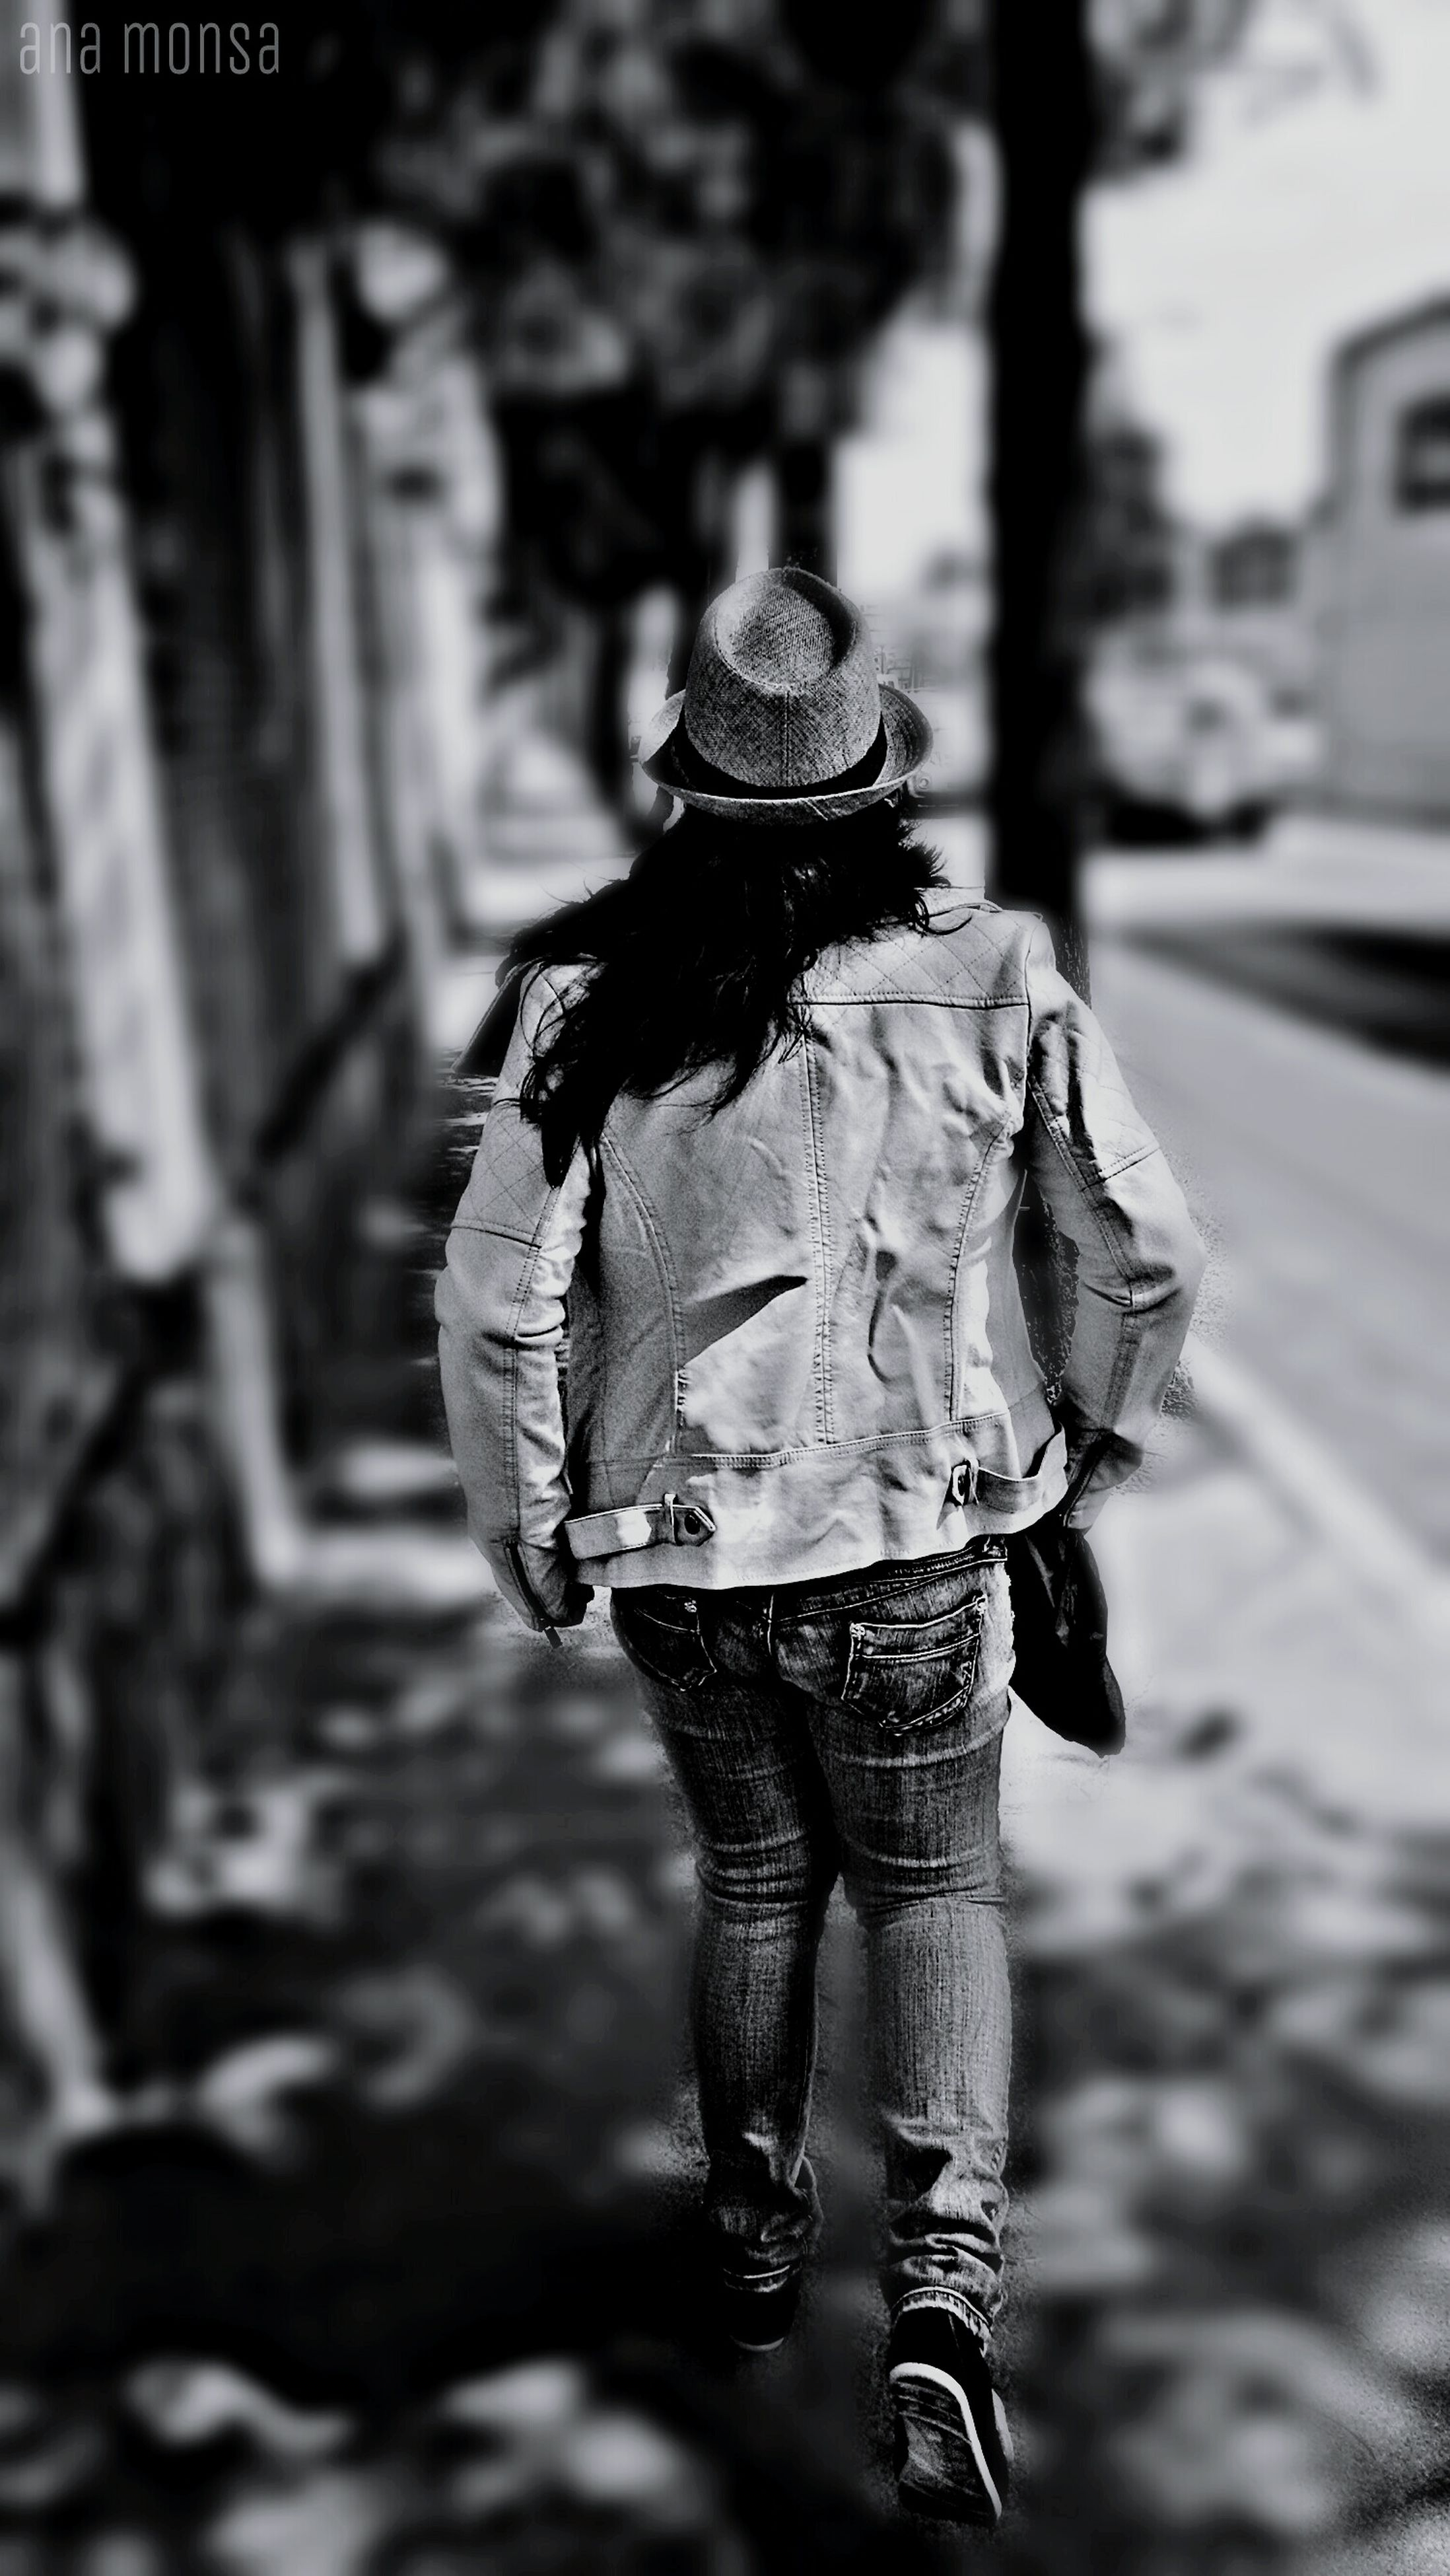 focus on foreground, street, rear view, lifestyles, walking, holding, casual clothing, person, leisure activity, full length, incidental people, standing, men, outdoors, day, road, selective focus, sidewalk